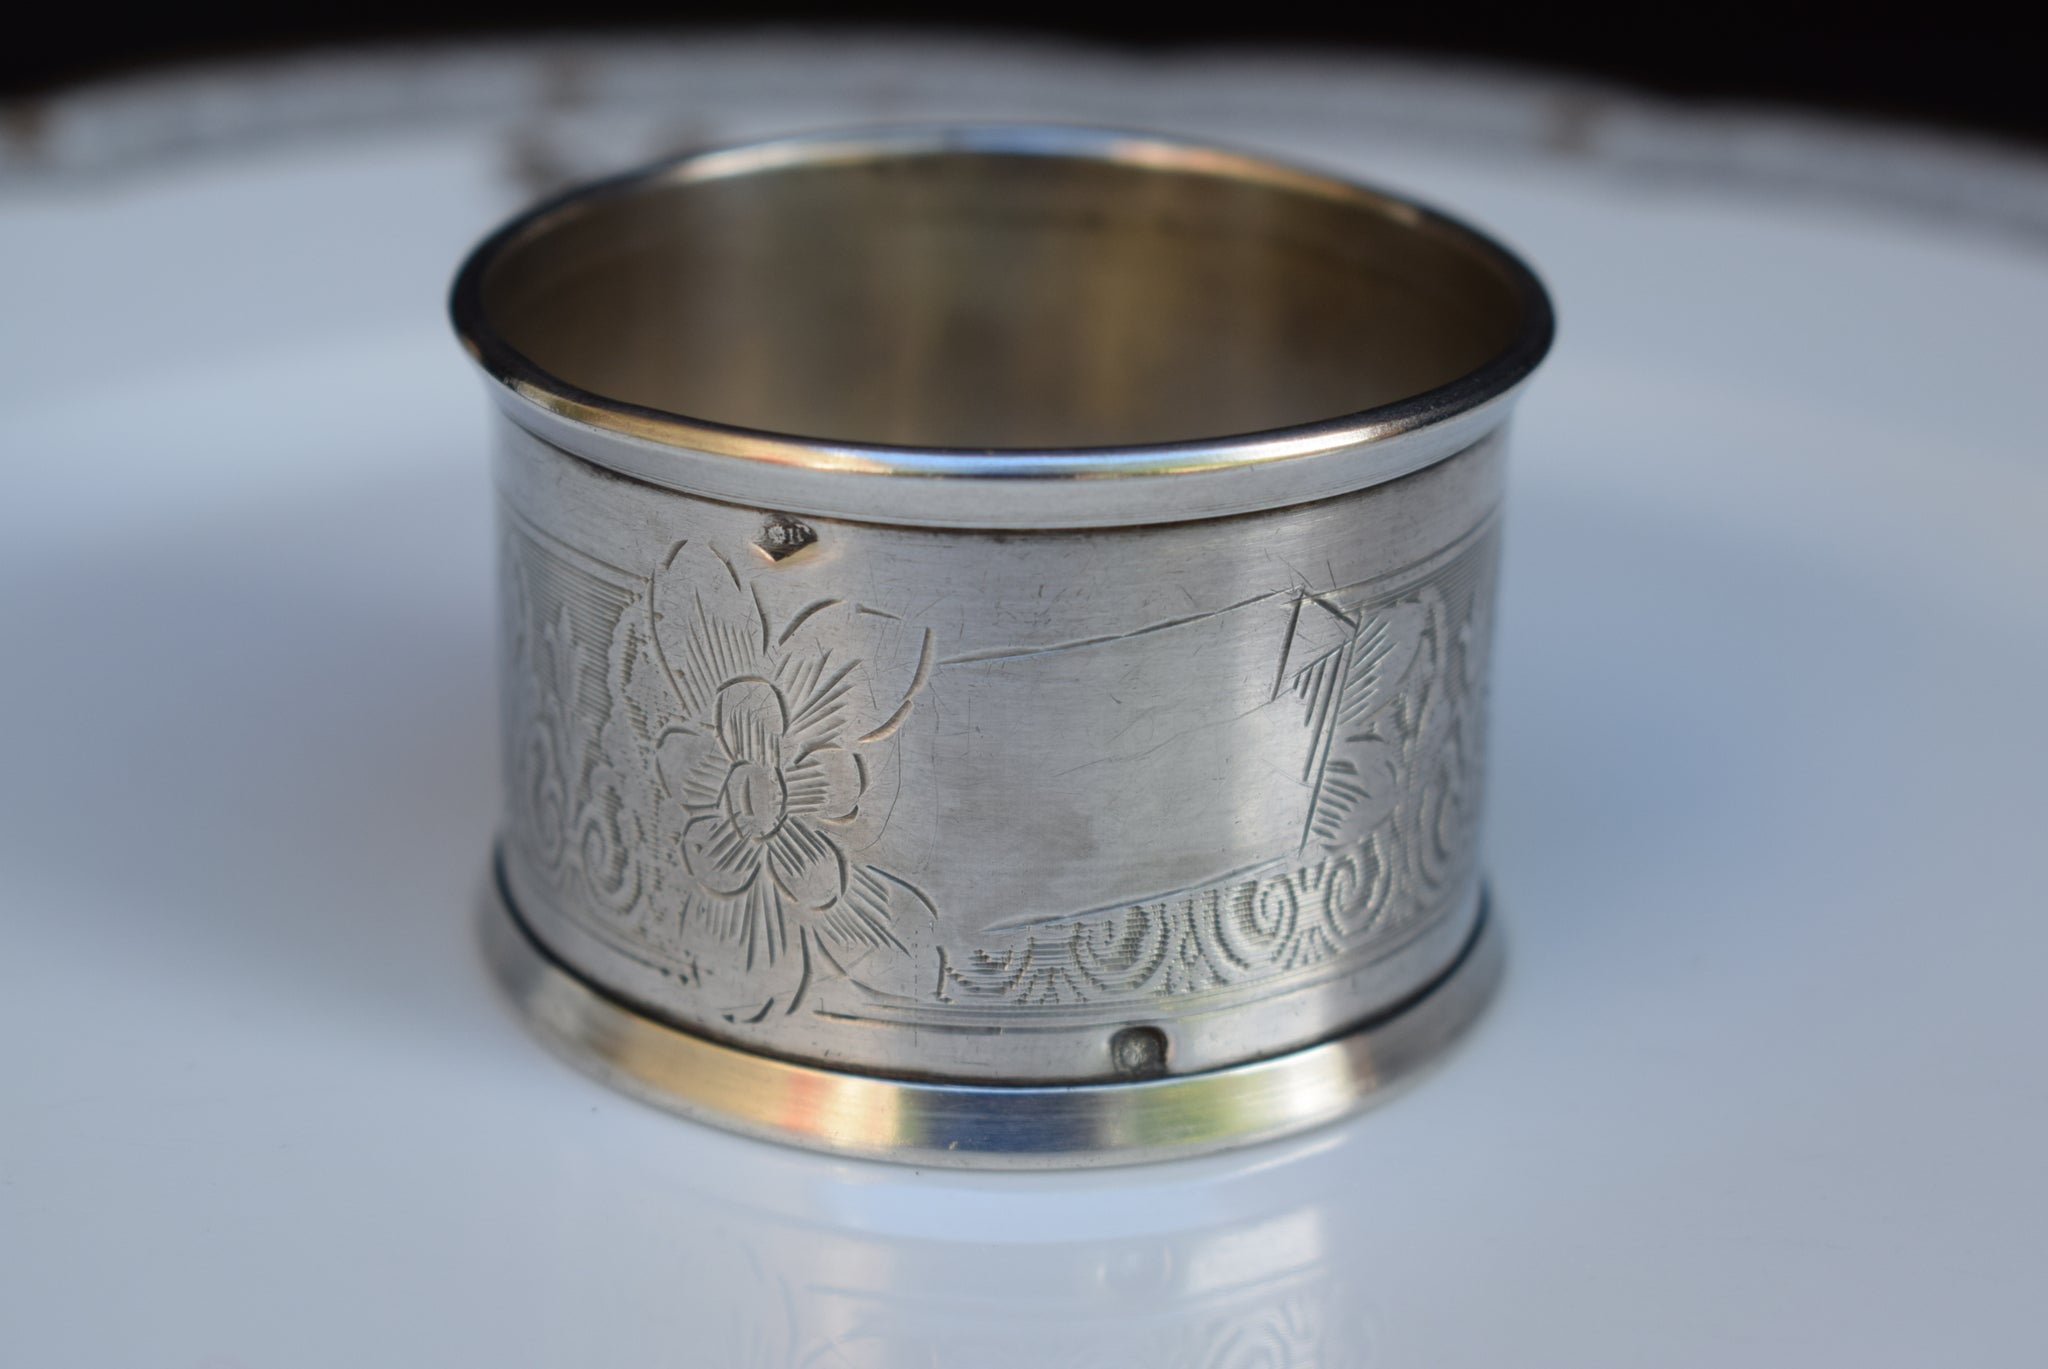 French Antique Sterling Silver Napkin Ring - Luxury Silverware Tableware - Birth Gift - French Country Cottage Table